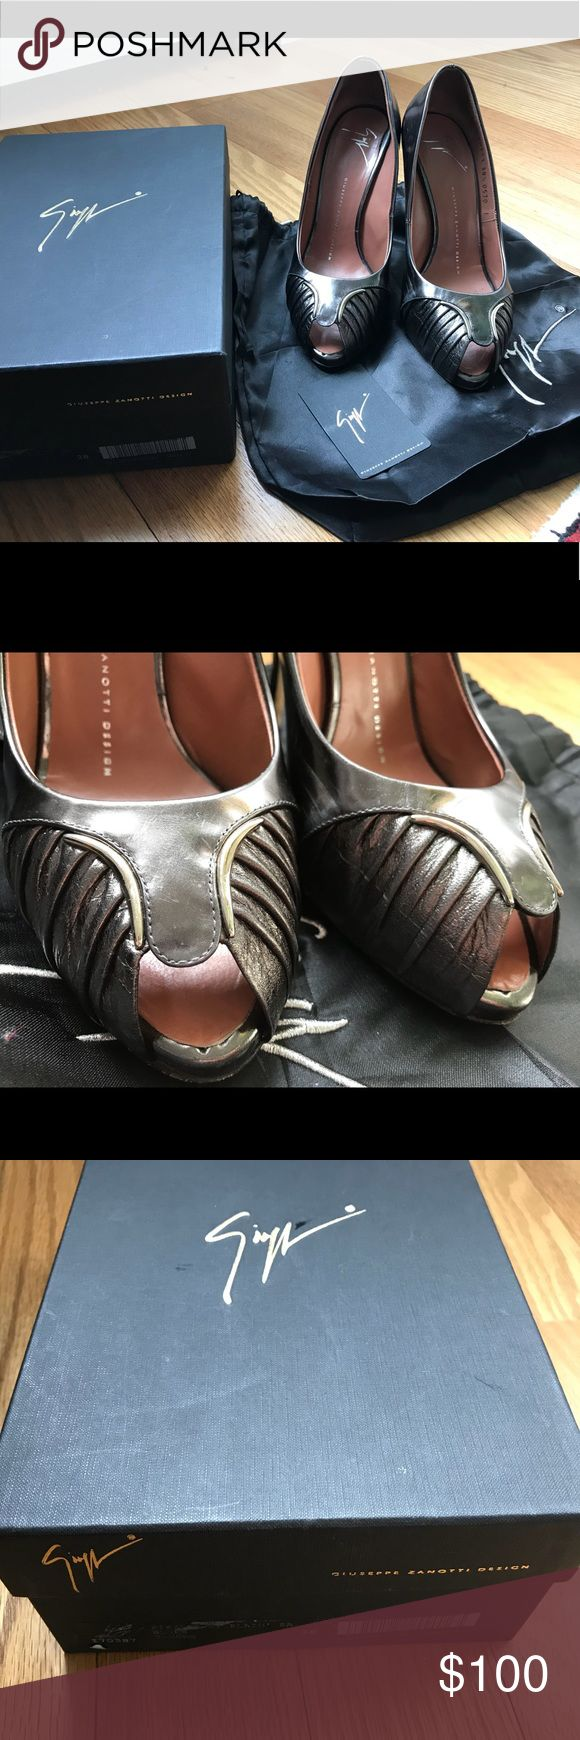 Guiseppe Zanotti dark silver heels Quilty italian leather shoes. Worn but in a good condition. Elegant and extremely comfortable. Comes with original box and dust bag. Italian size 38.5 Giuseppe Zanotti Shoes Heels #giuseppezanottiheelssilver